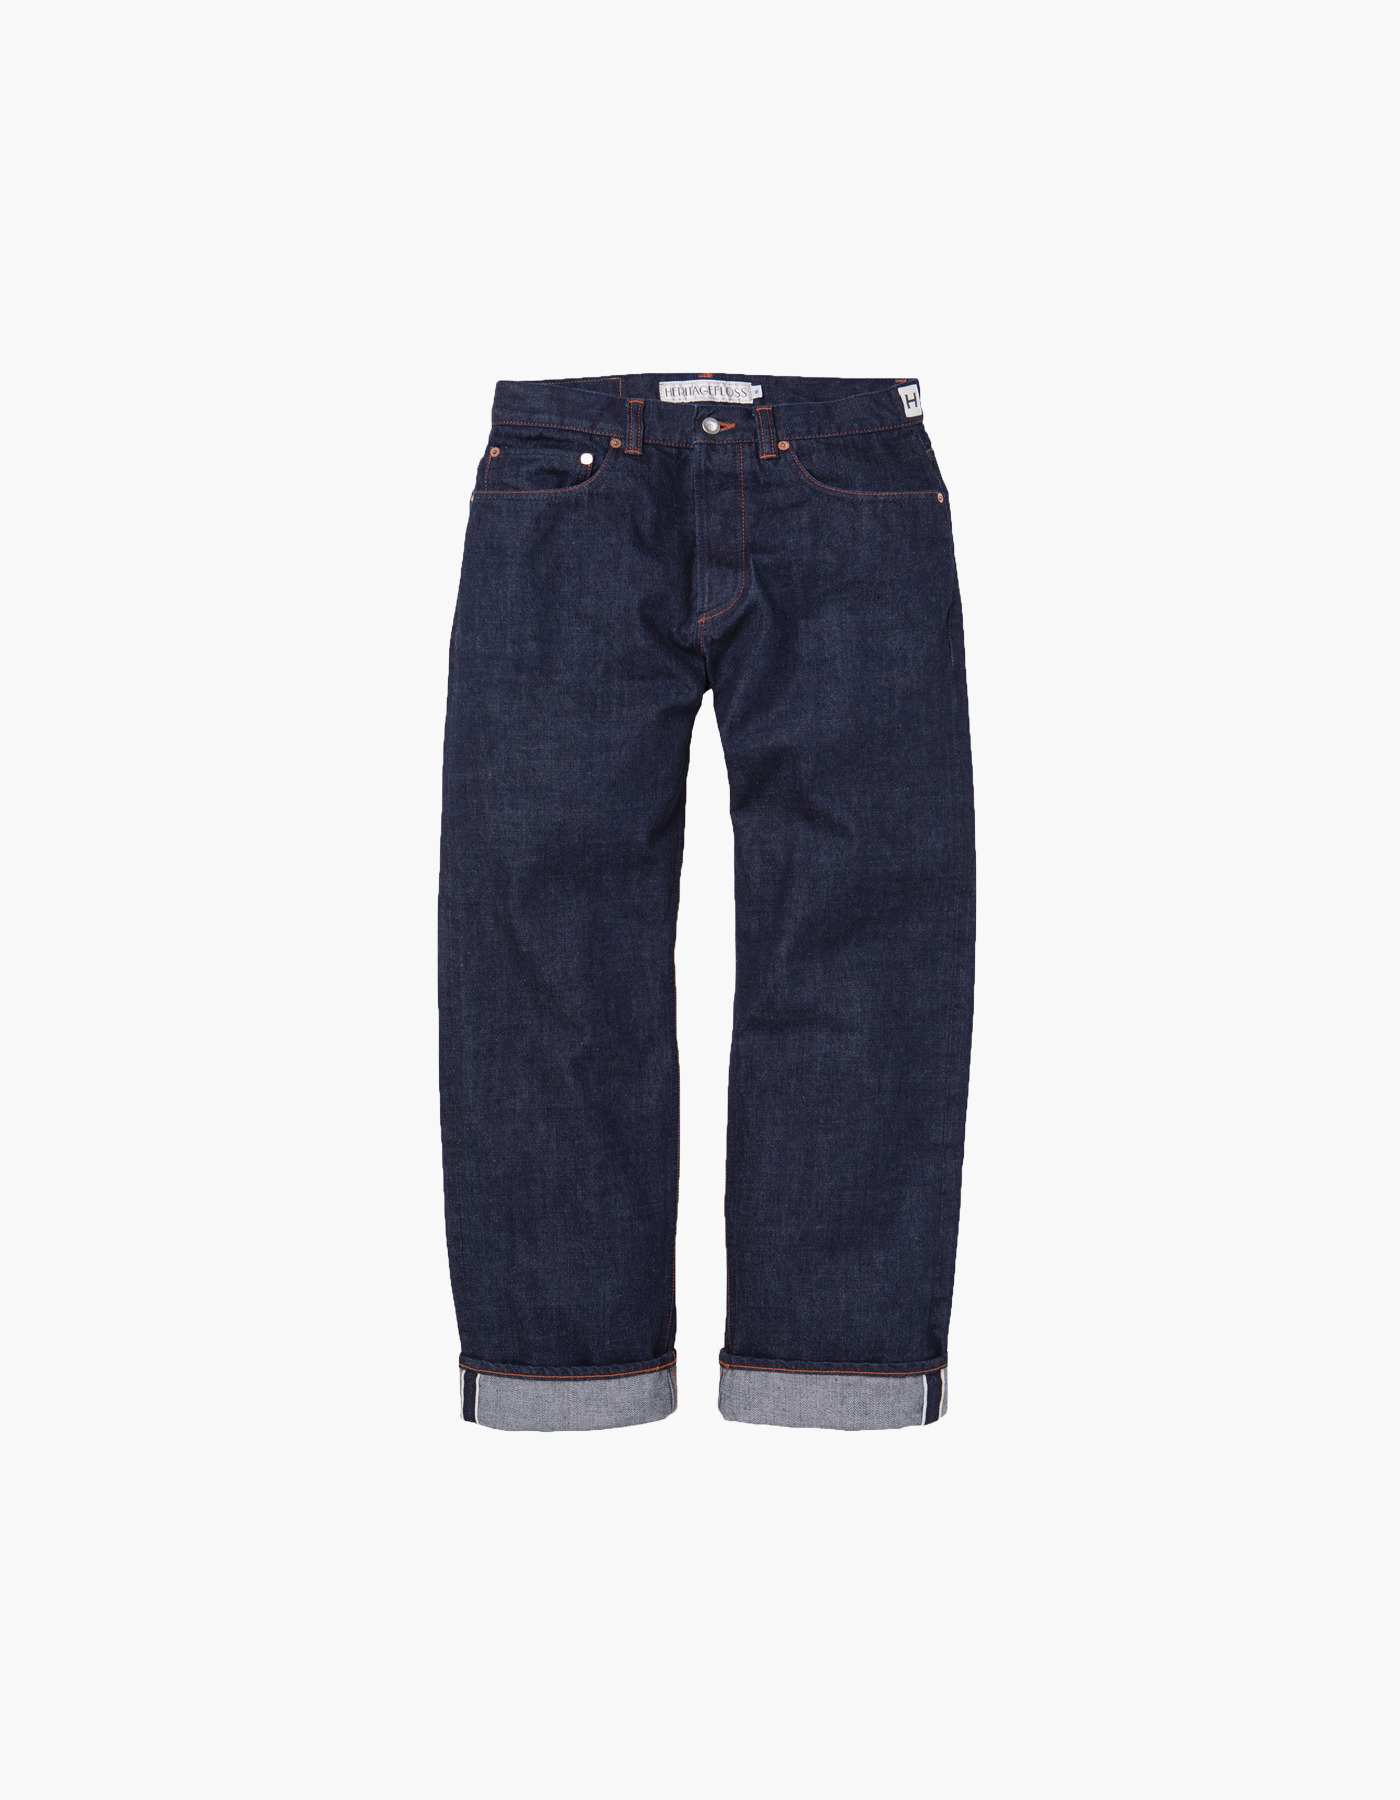 13OZ OKA SELVEDGE PANTS / INDIGO